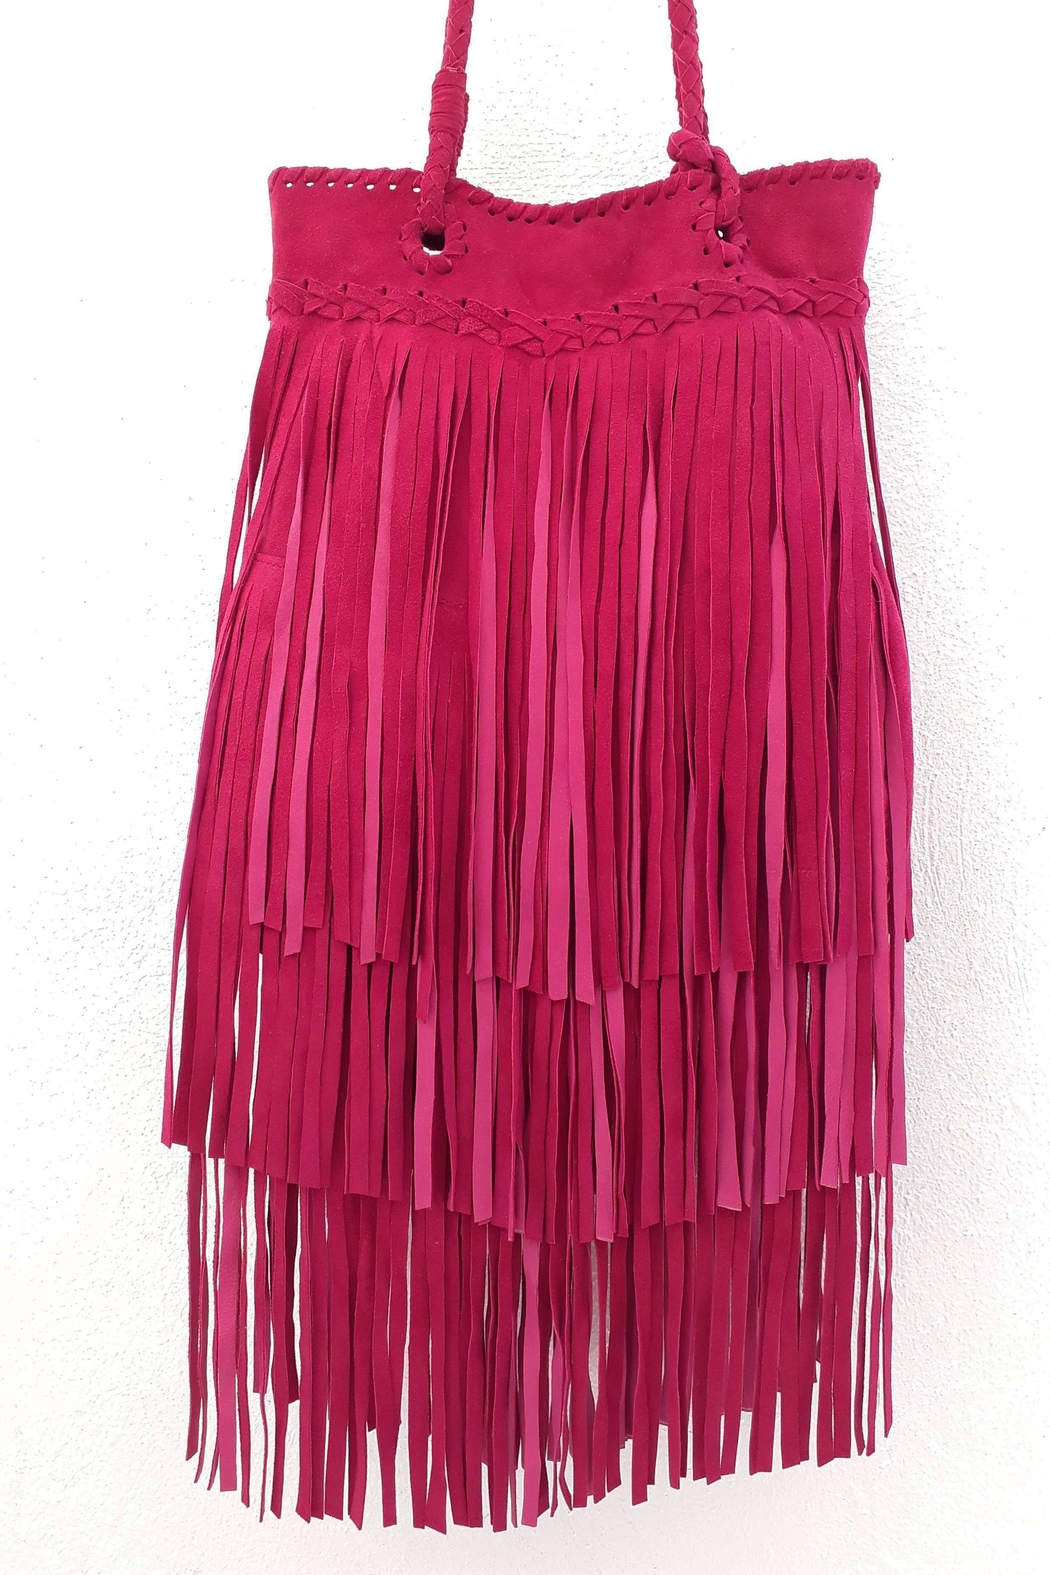 Areias Leather Pink Fringes Bag - Front Full Image